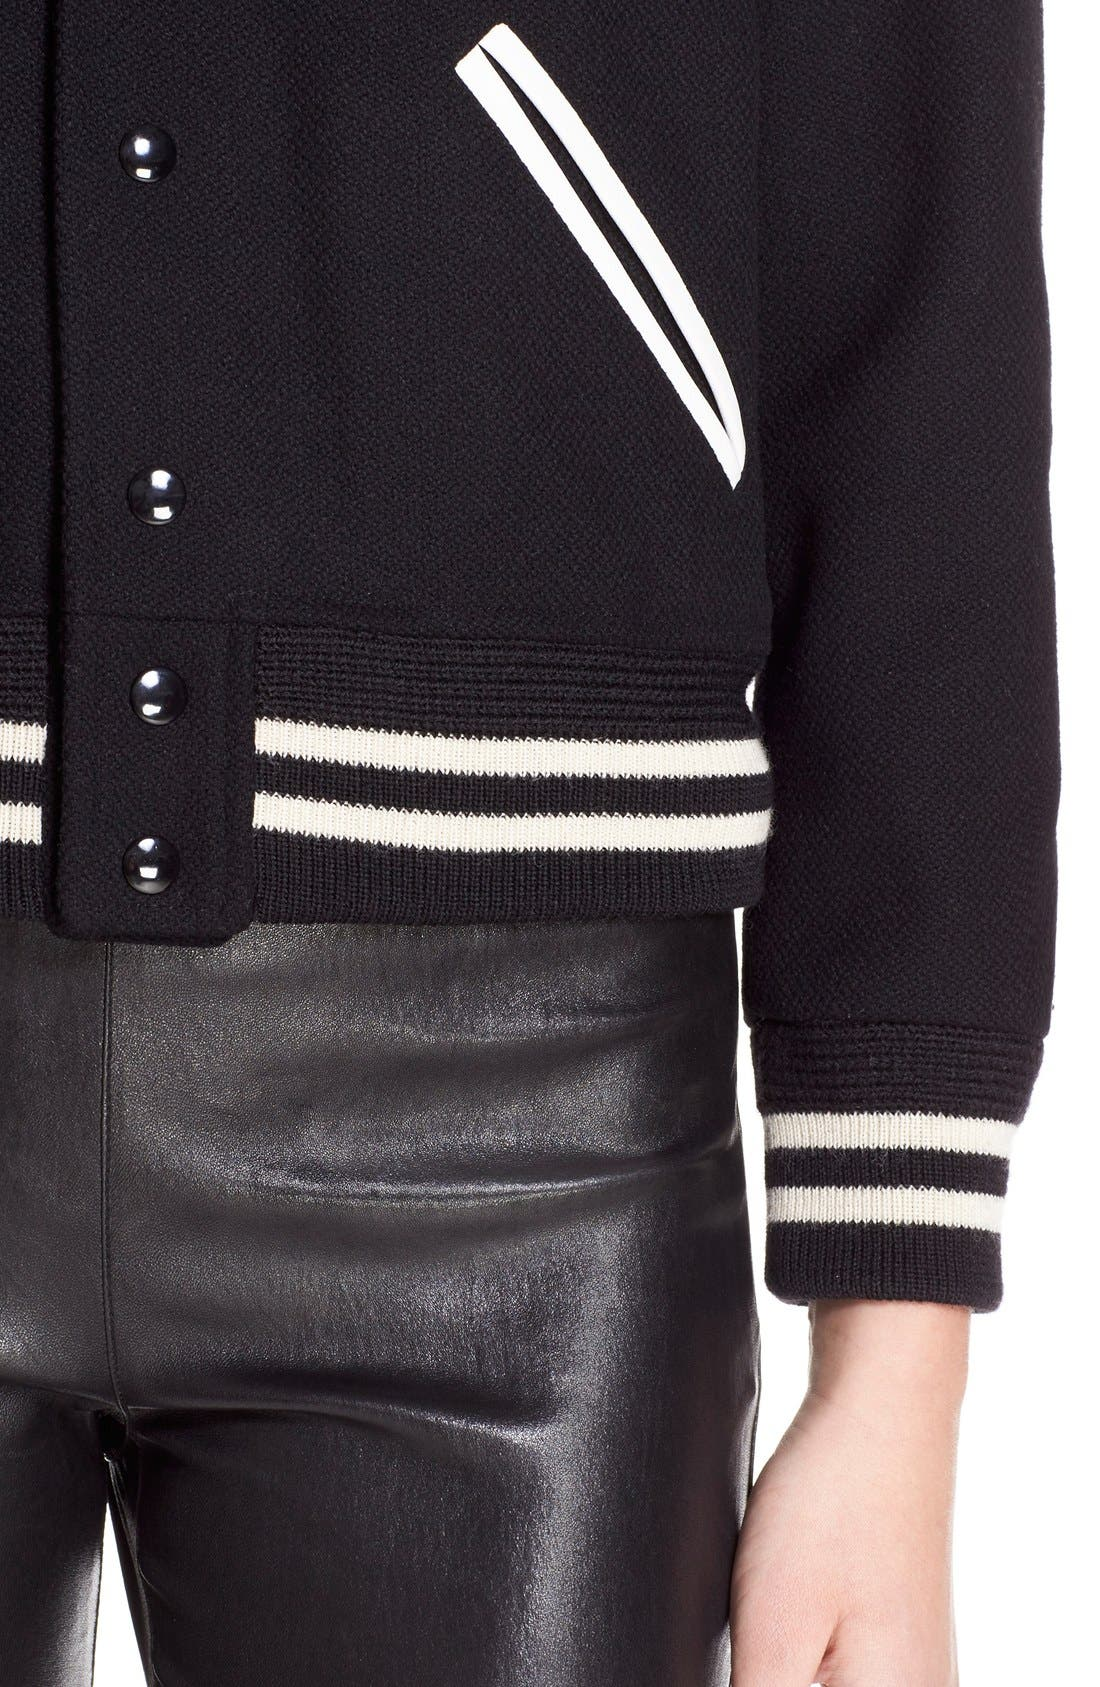 'Teddy' White Leather Trim Bomber Jacket,                             Alternate thumbnail 6, color,                             BLACK WHITE